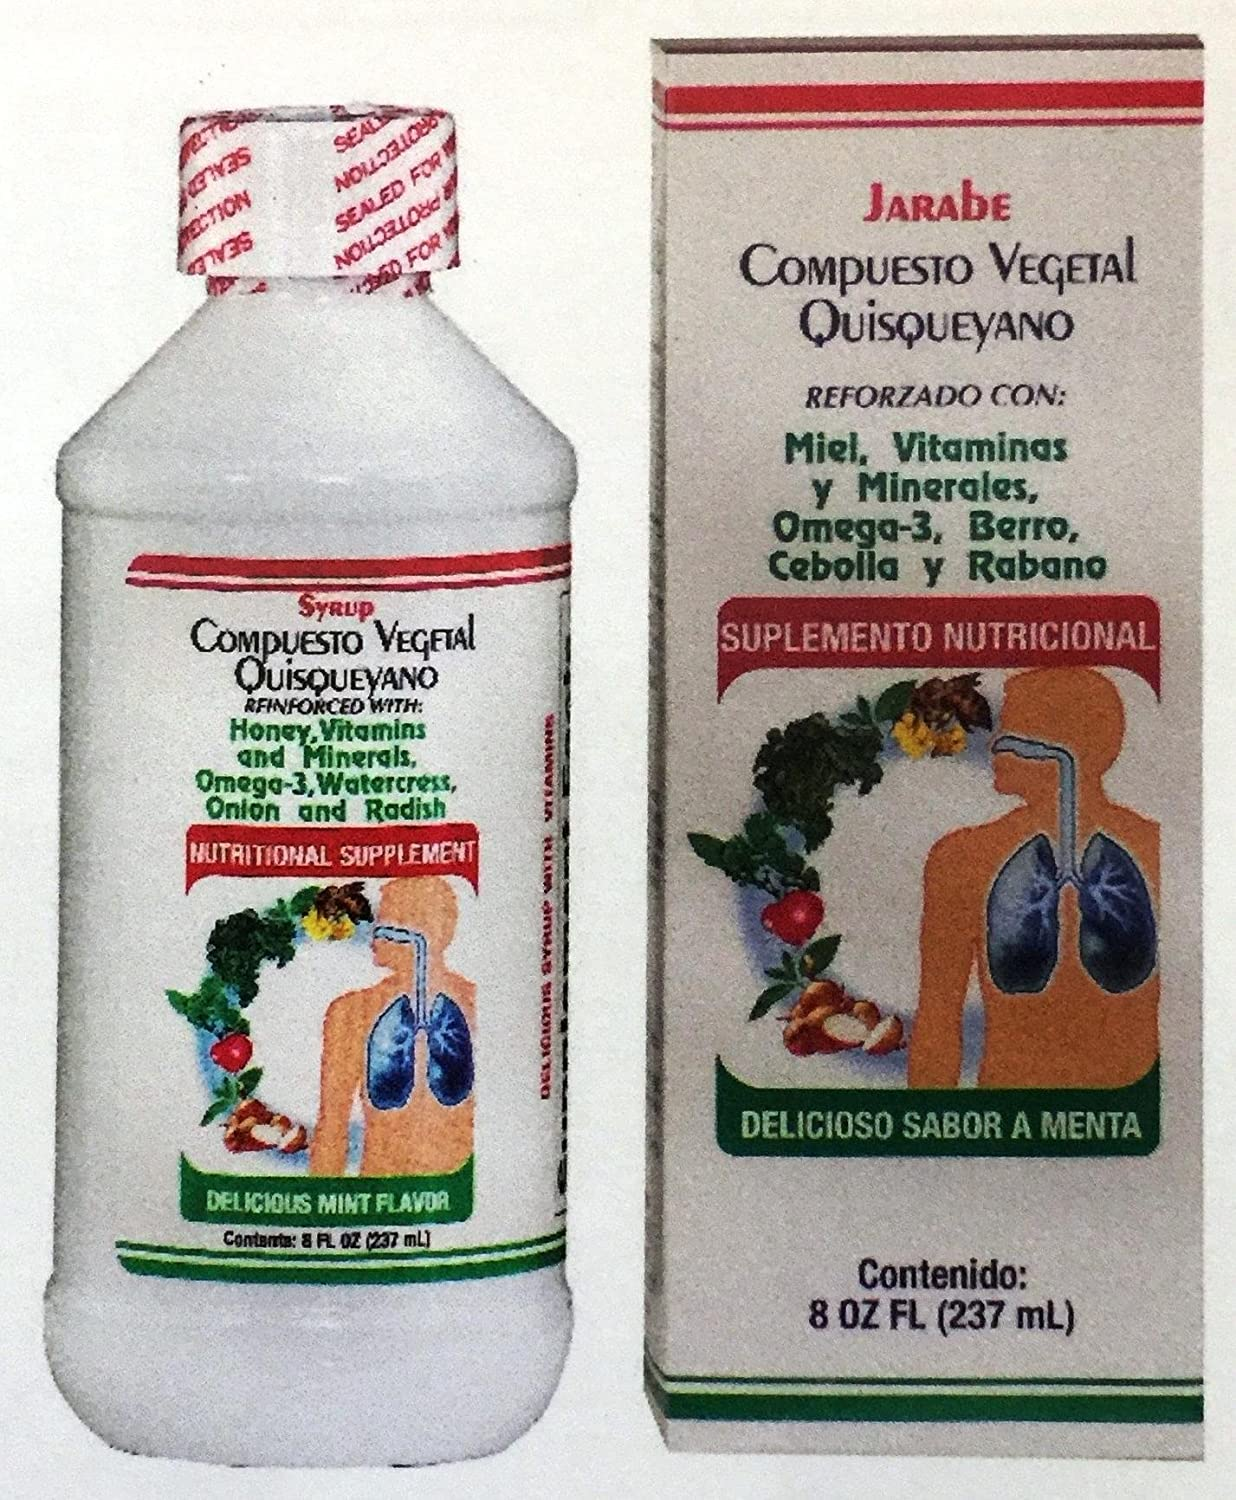 Amazon.com: Compuesto Vegetal Quisqueyano Jarabe 8 oz. Vegetal Compound: Health & Personal Care